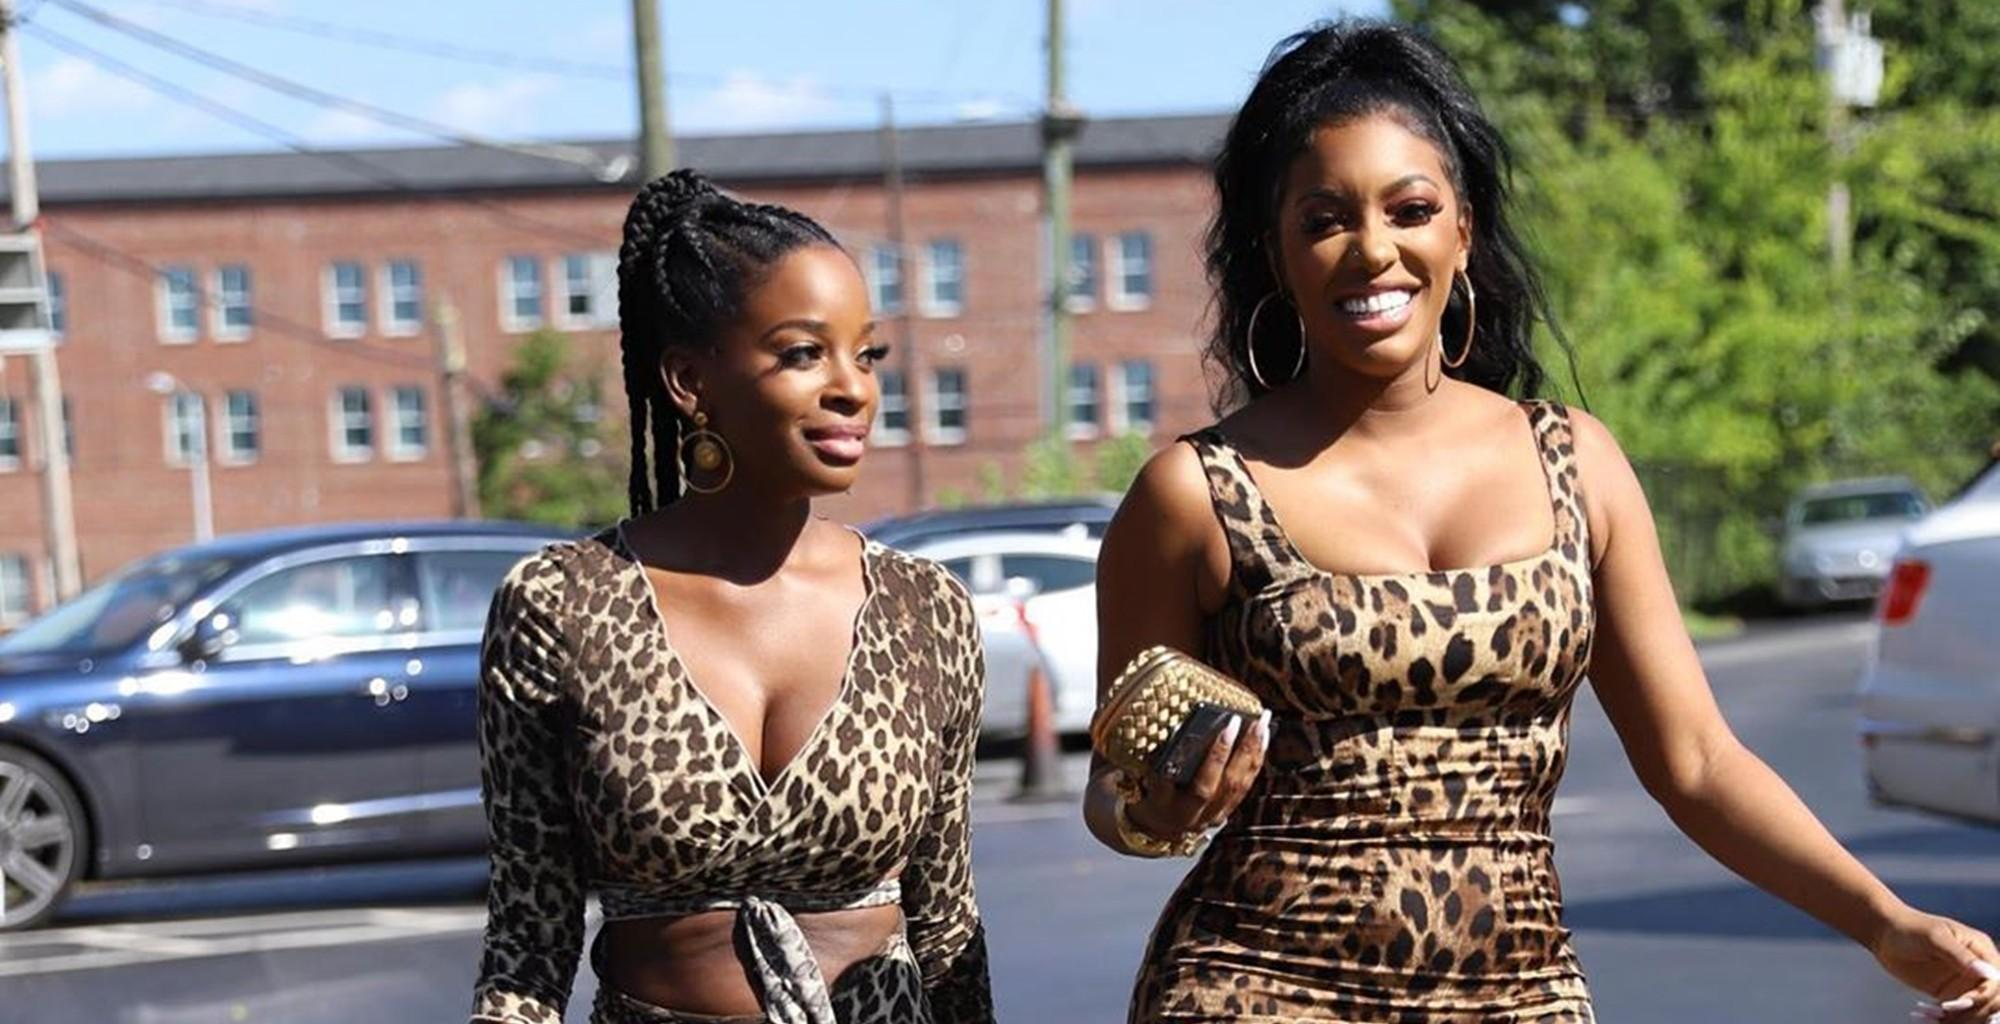 Porsha Williams And Shamea Morton Seemed To Have Taken Their Men Into Kandi Burruss's Wild Dungeon In New Video -- But Marlo Hampton Left Many Confused